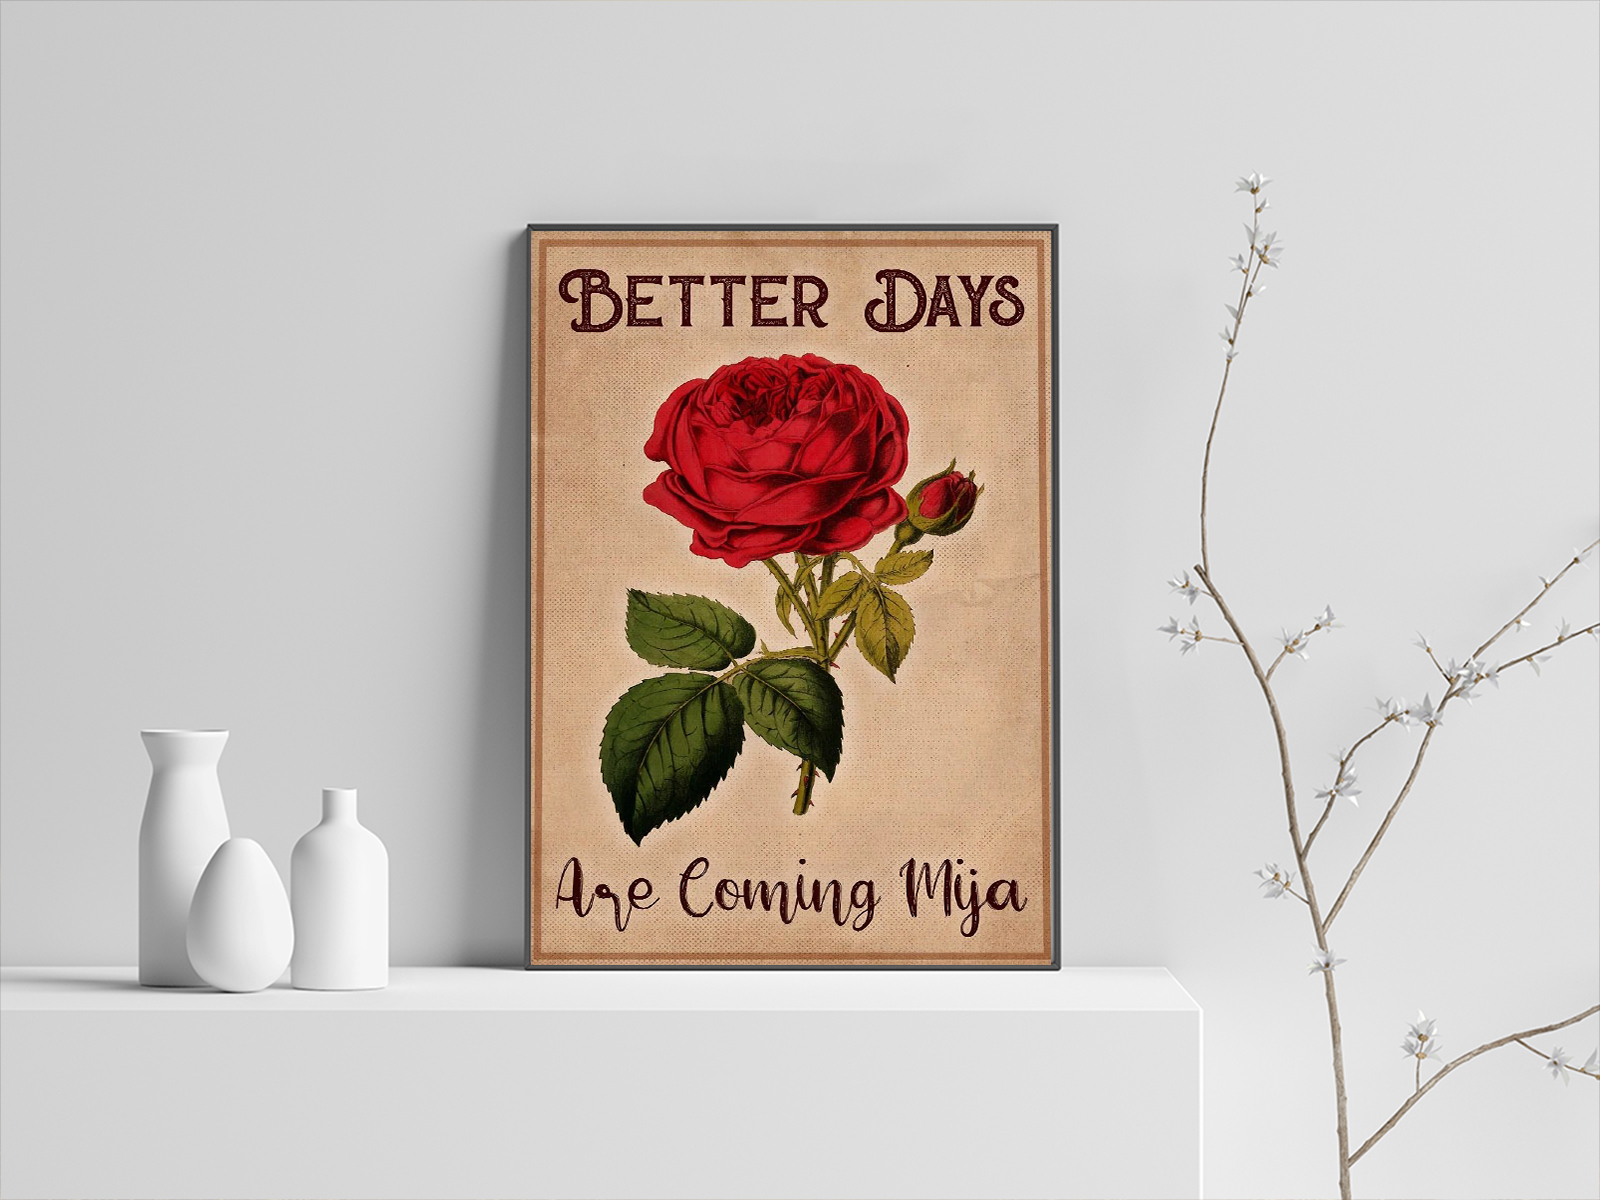 Roses Better Days Are Coming Mija Poster